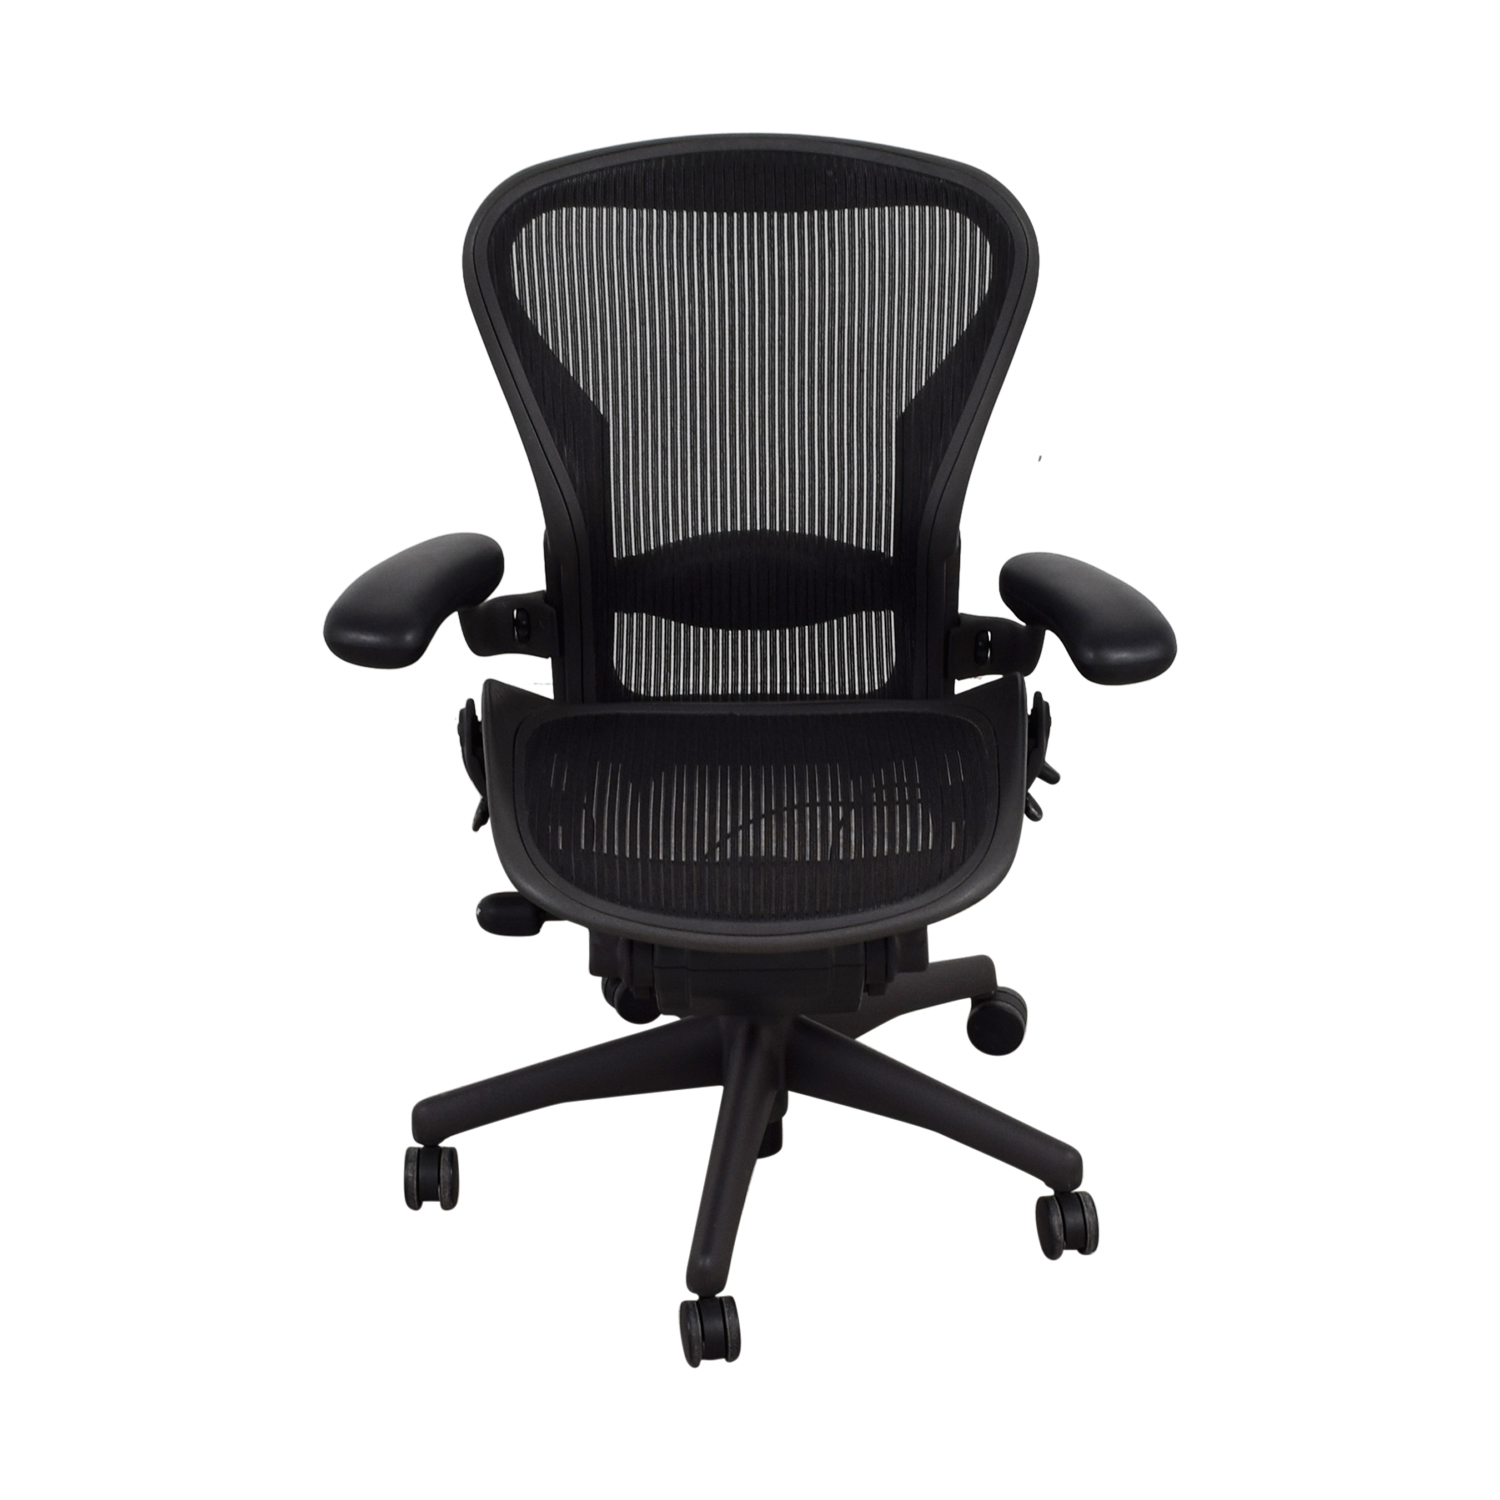 Herman Miller Herman Miller Aeron Black Chair nyc